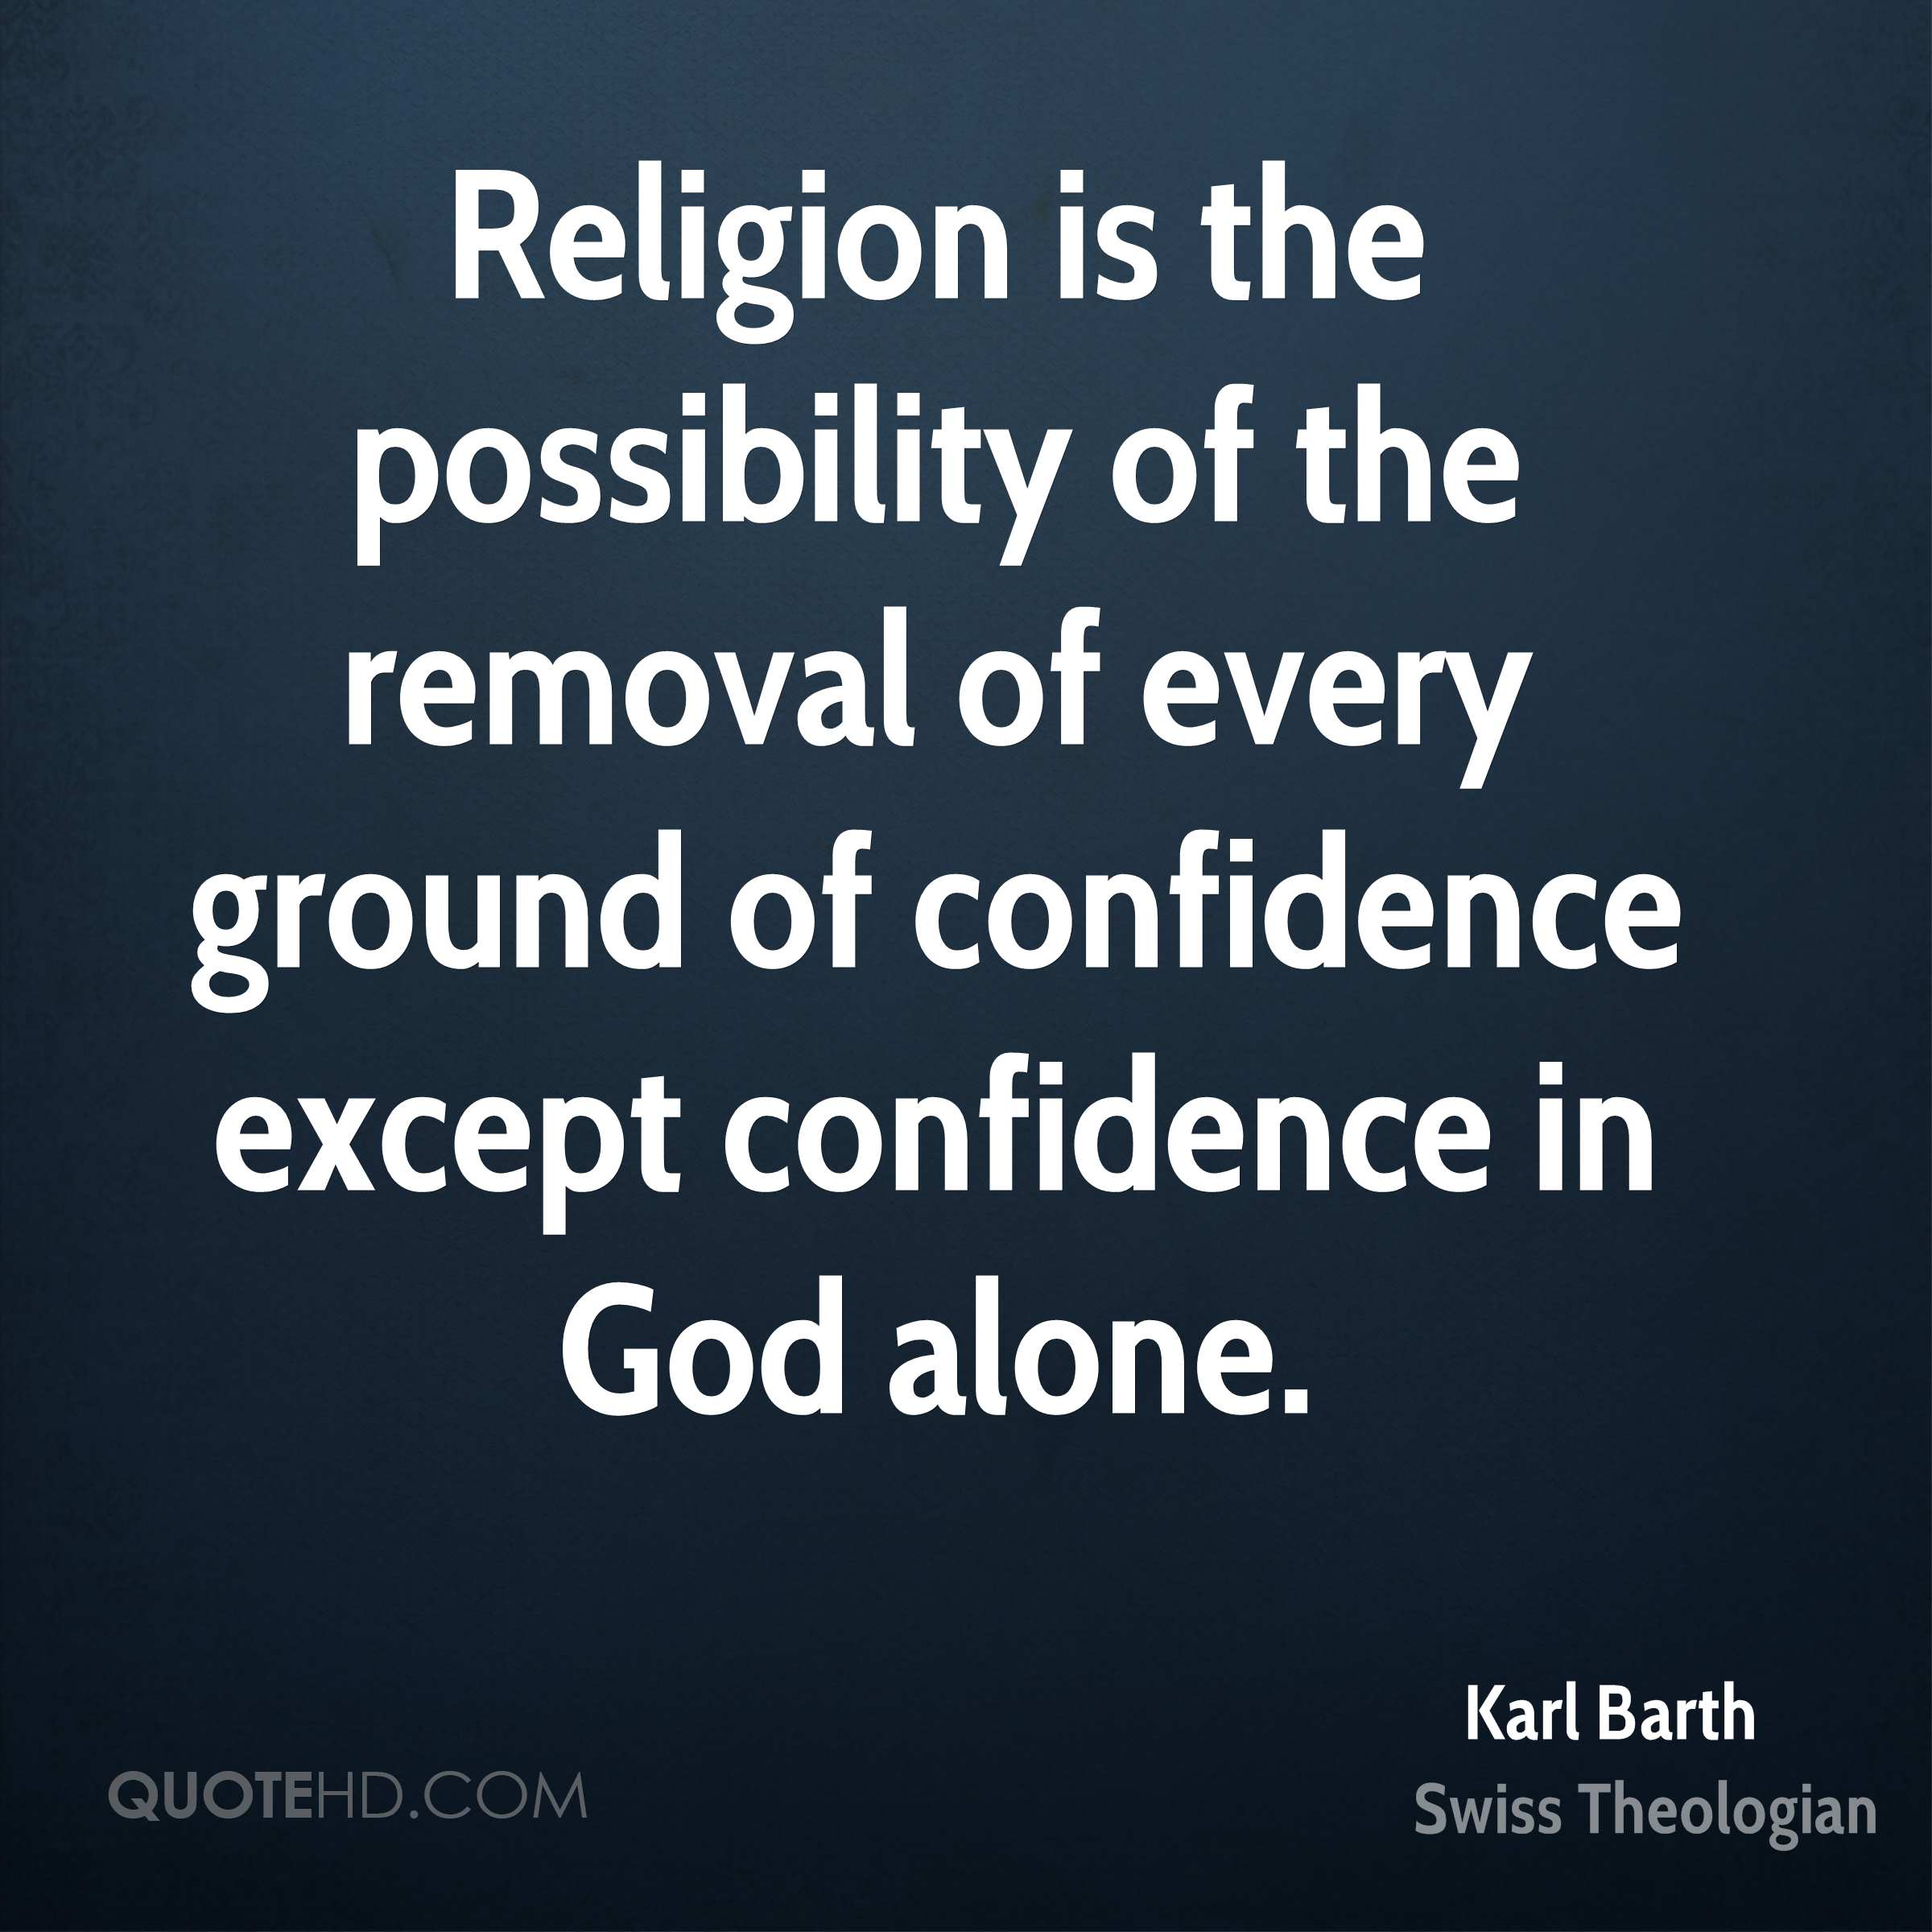 Religion is the possibility of the removal of every ground of confidence except confidence in God alone.